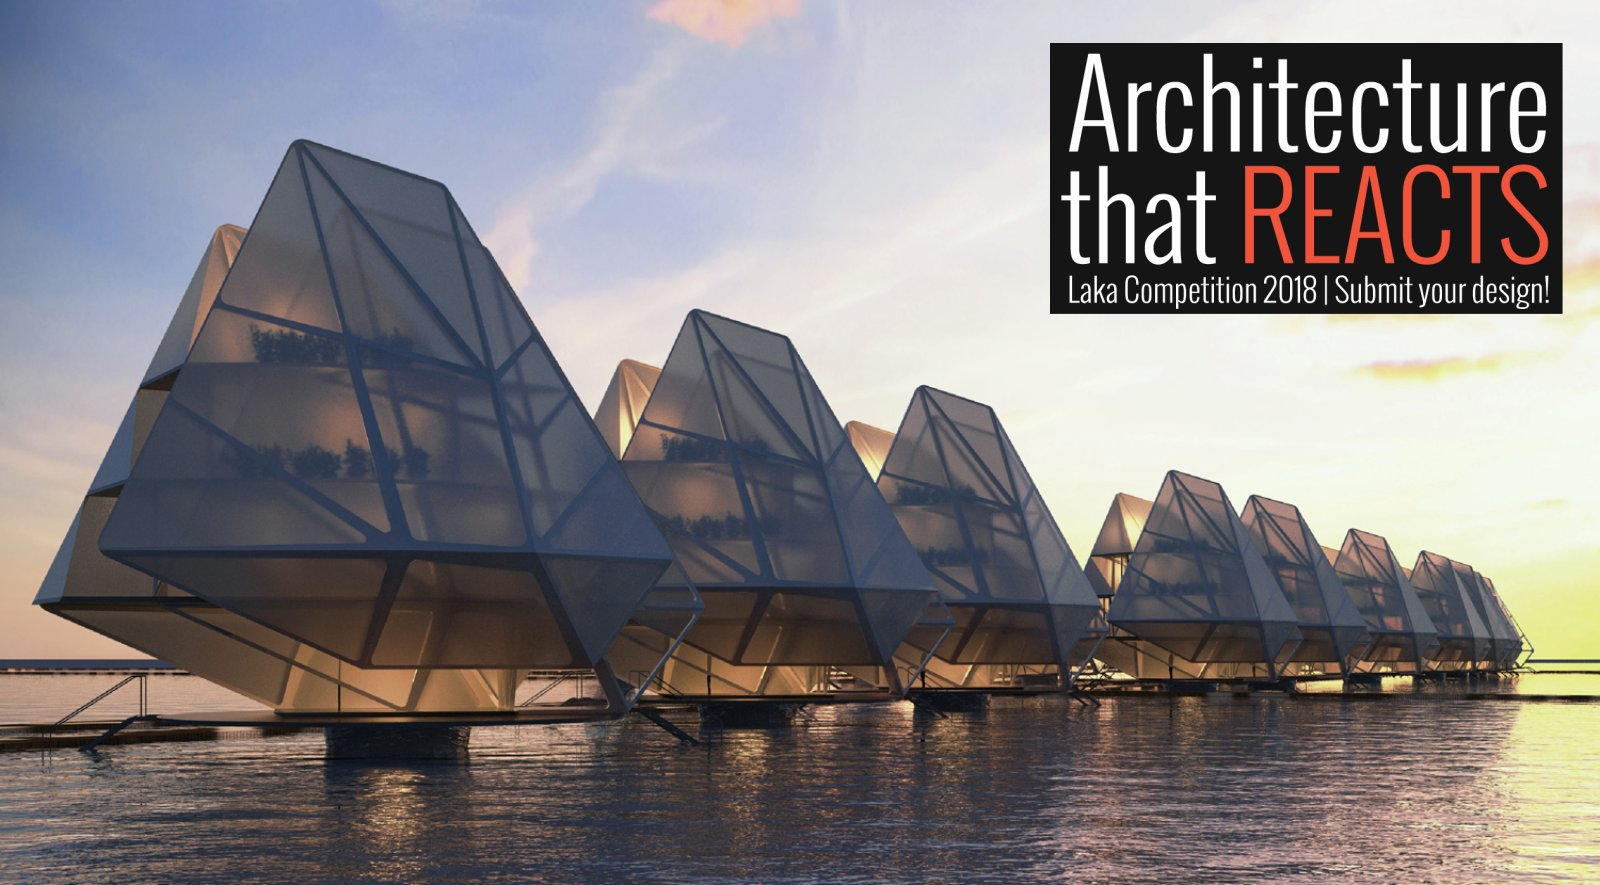 Architecture that Reacts